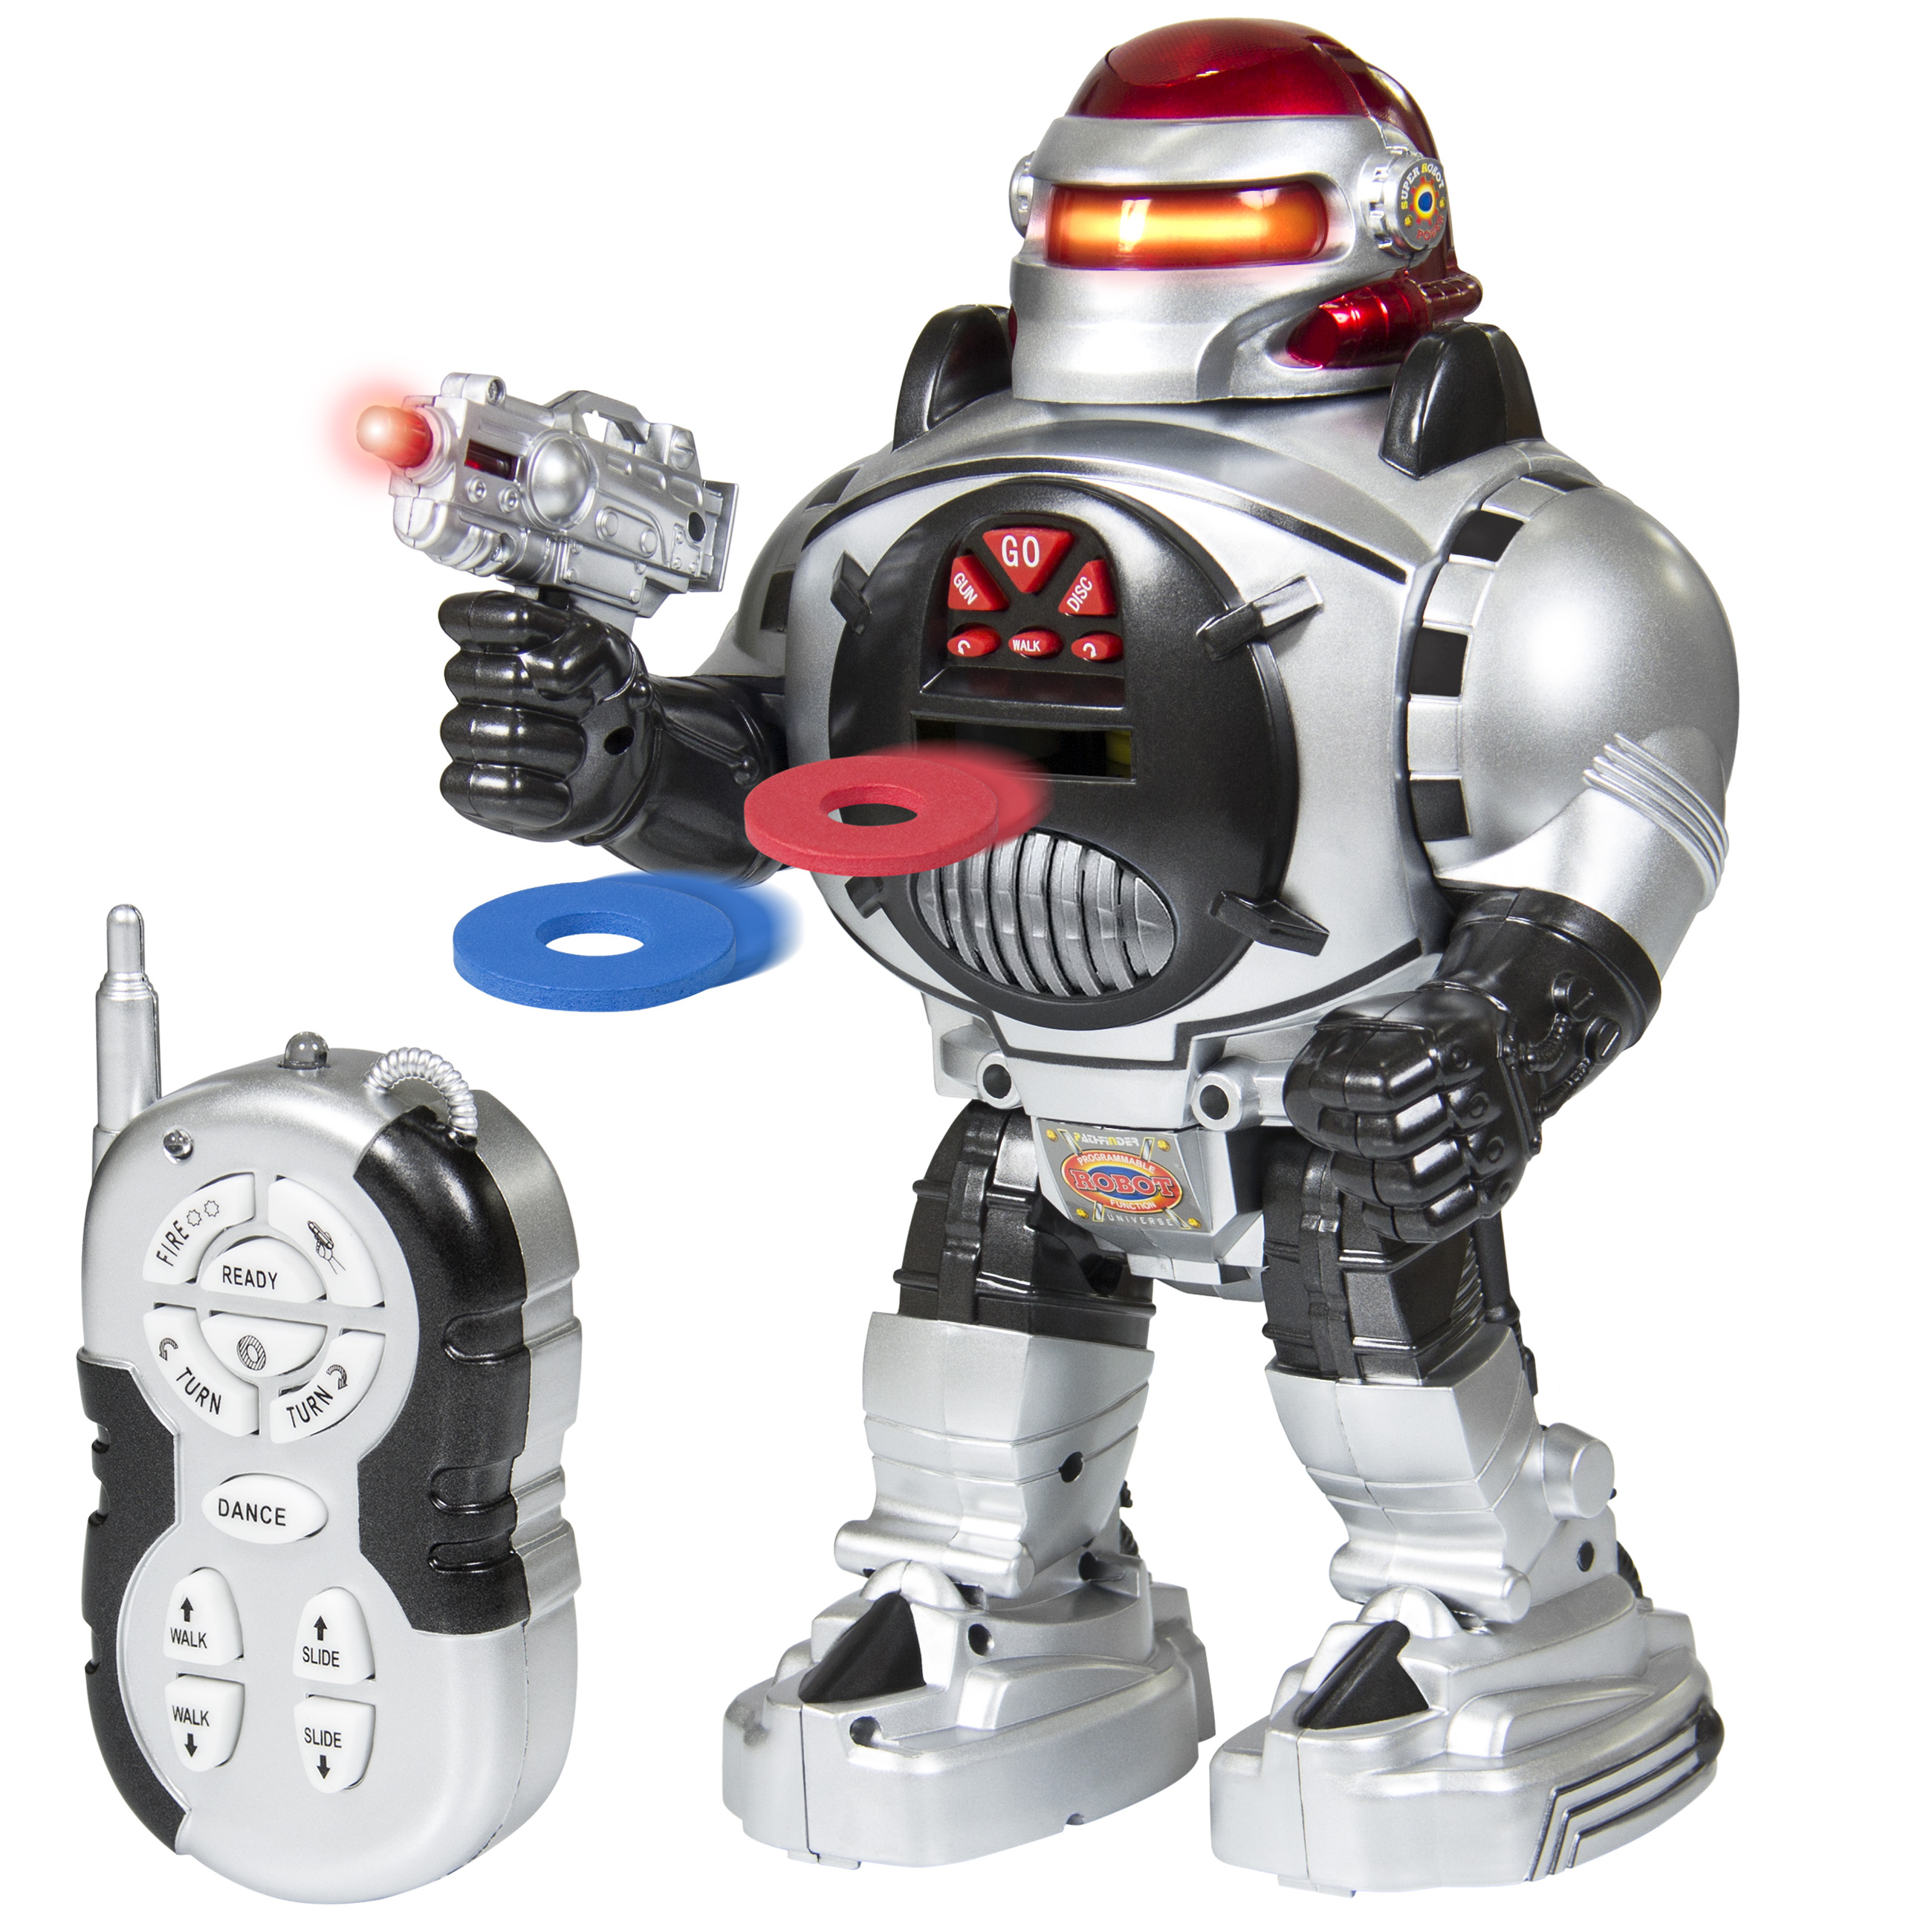 Best Choice Products Kids Battery-Powered Remote Control Disc-Shooting Battle Fighting Robot RC Toy w/ Walking, Talking, Dancing Actions, Lights - Multicolor